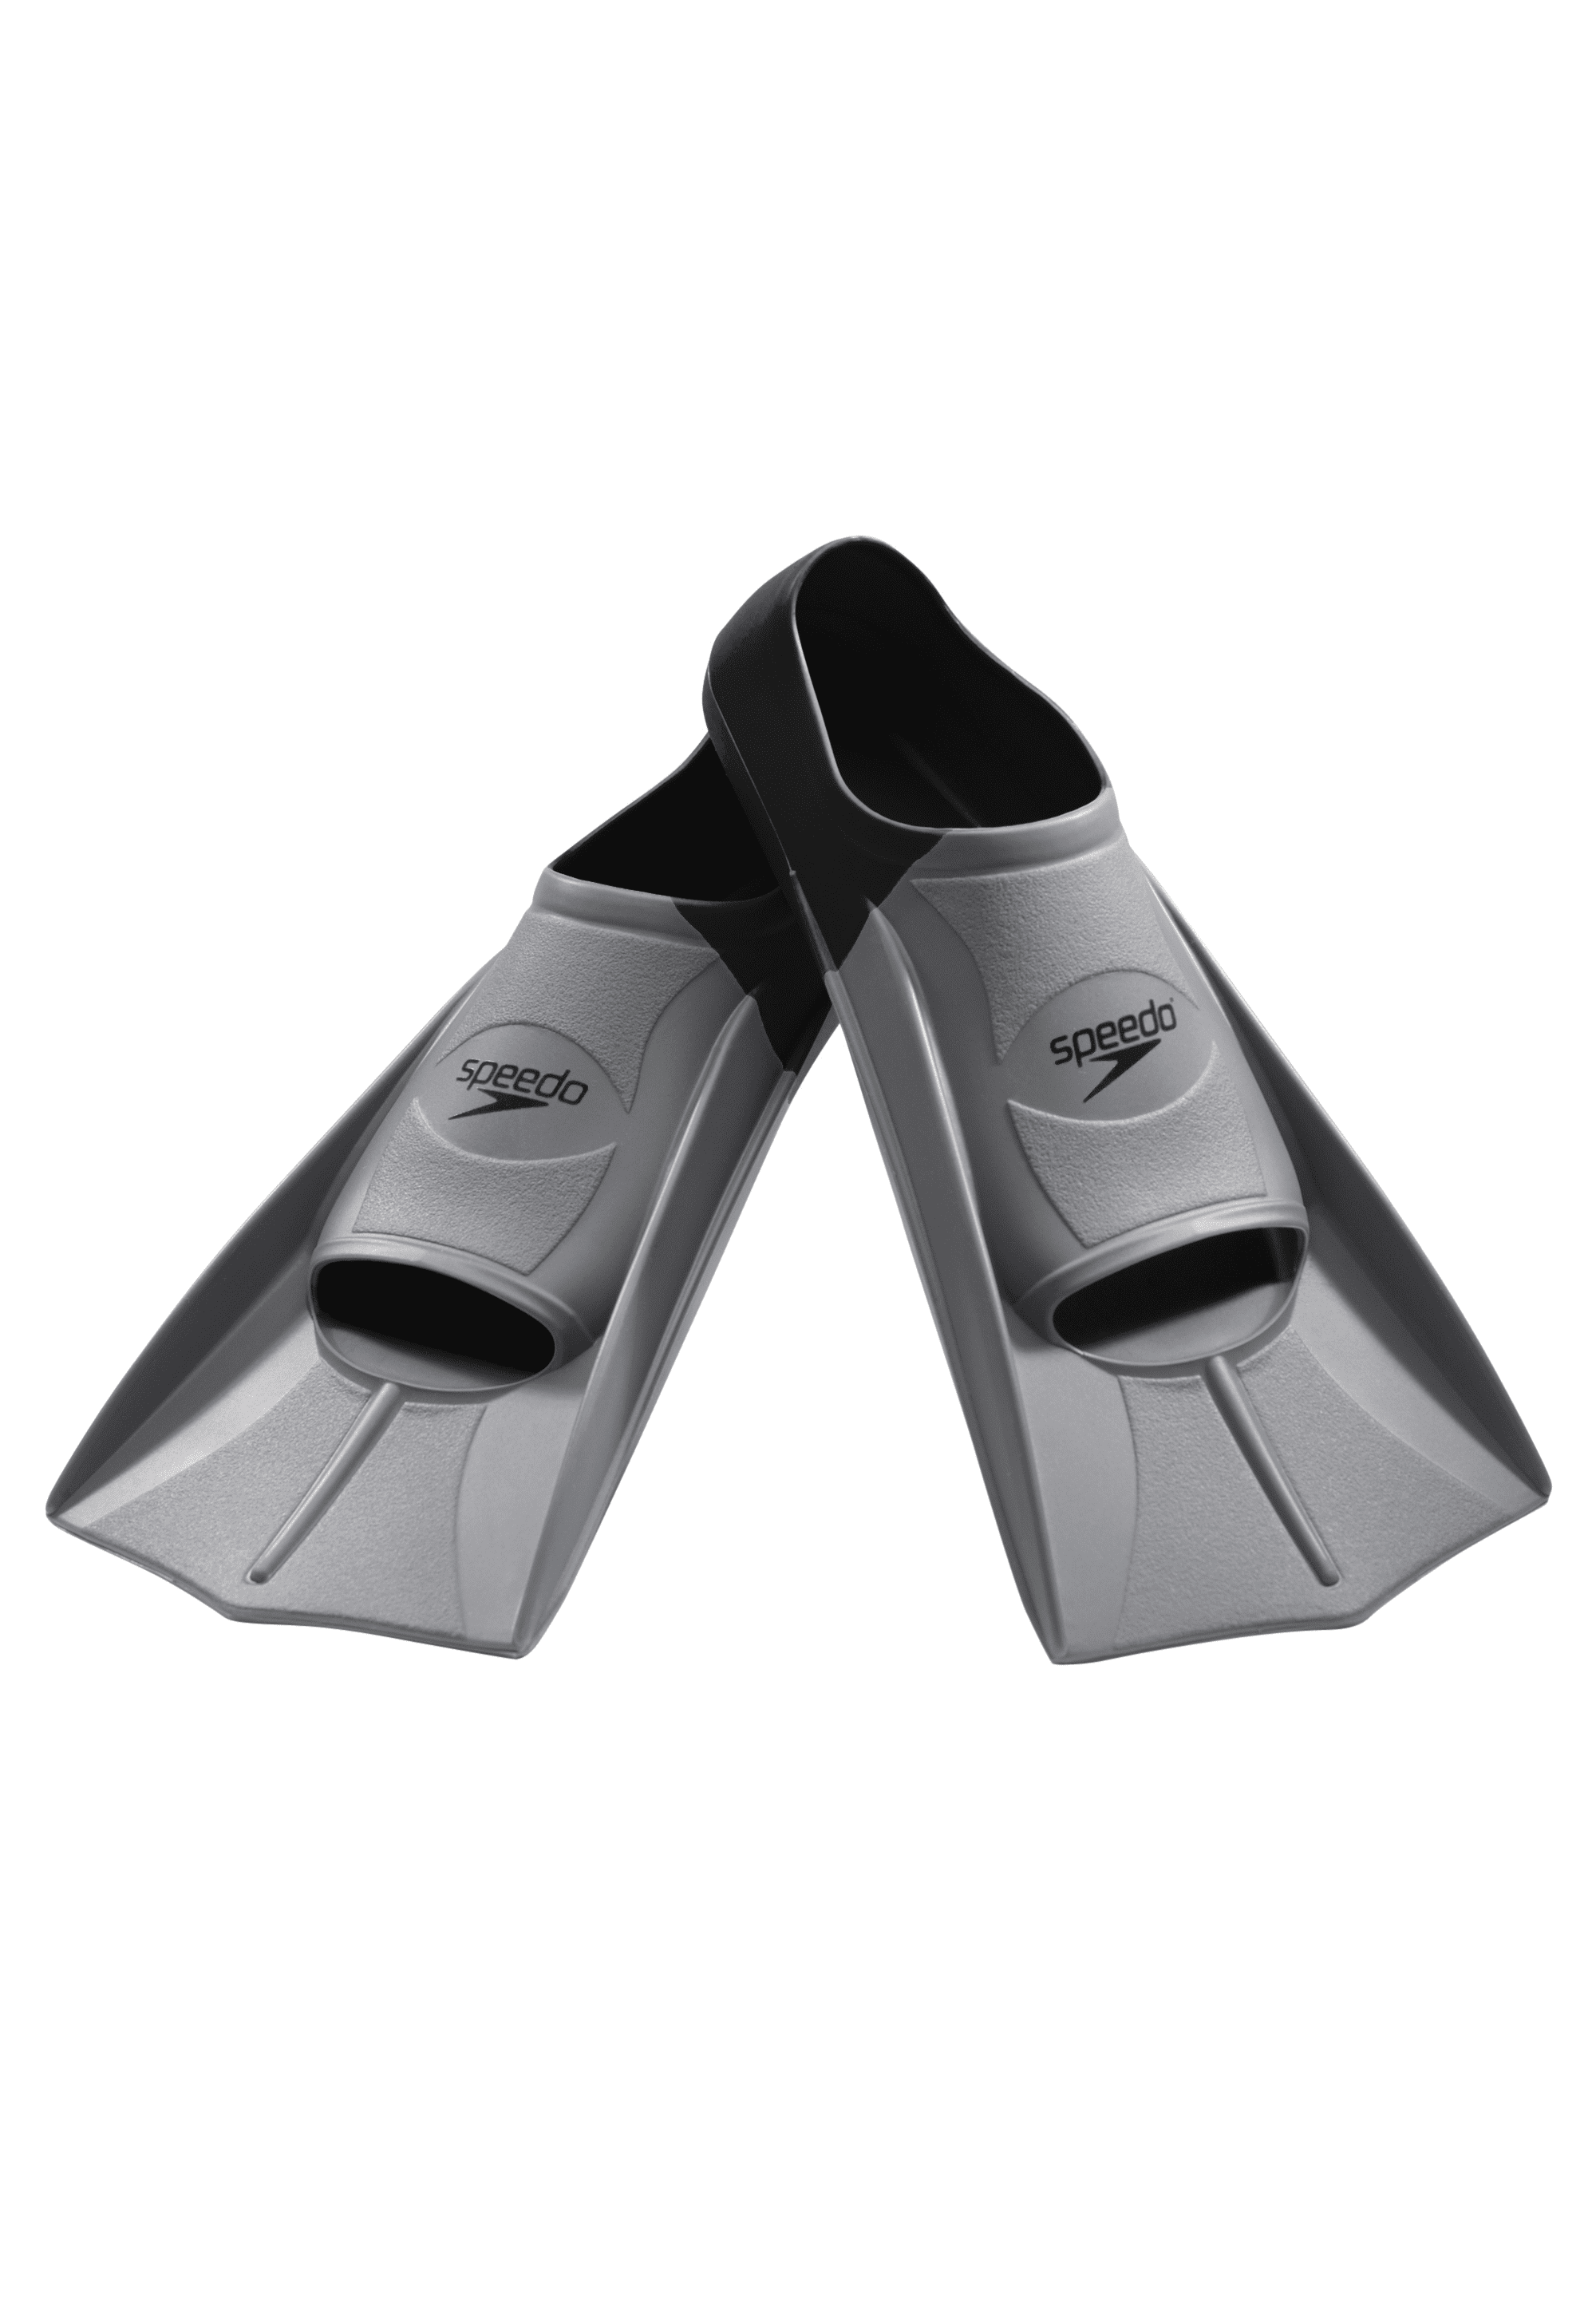 Speedo Shortblade Fins Black 39.99